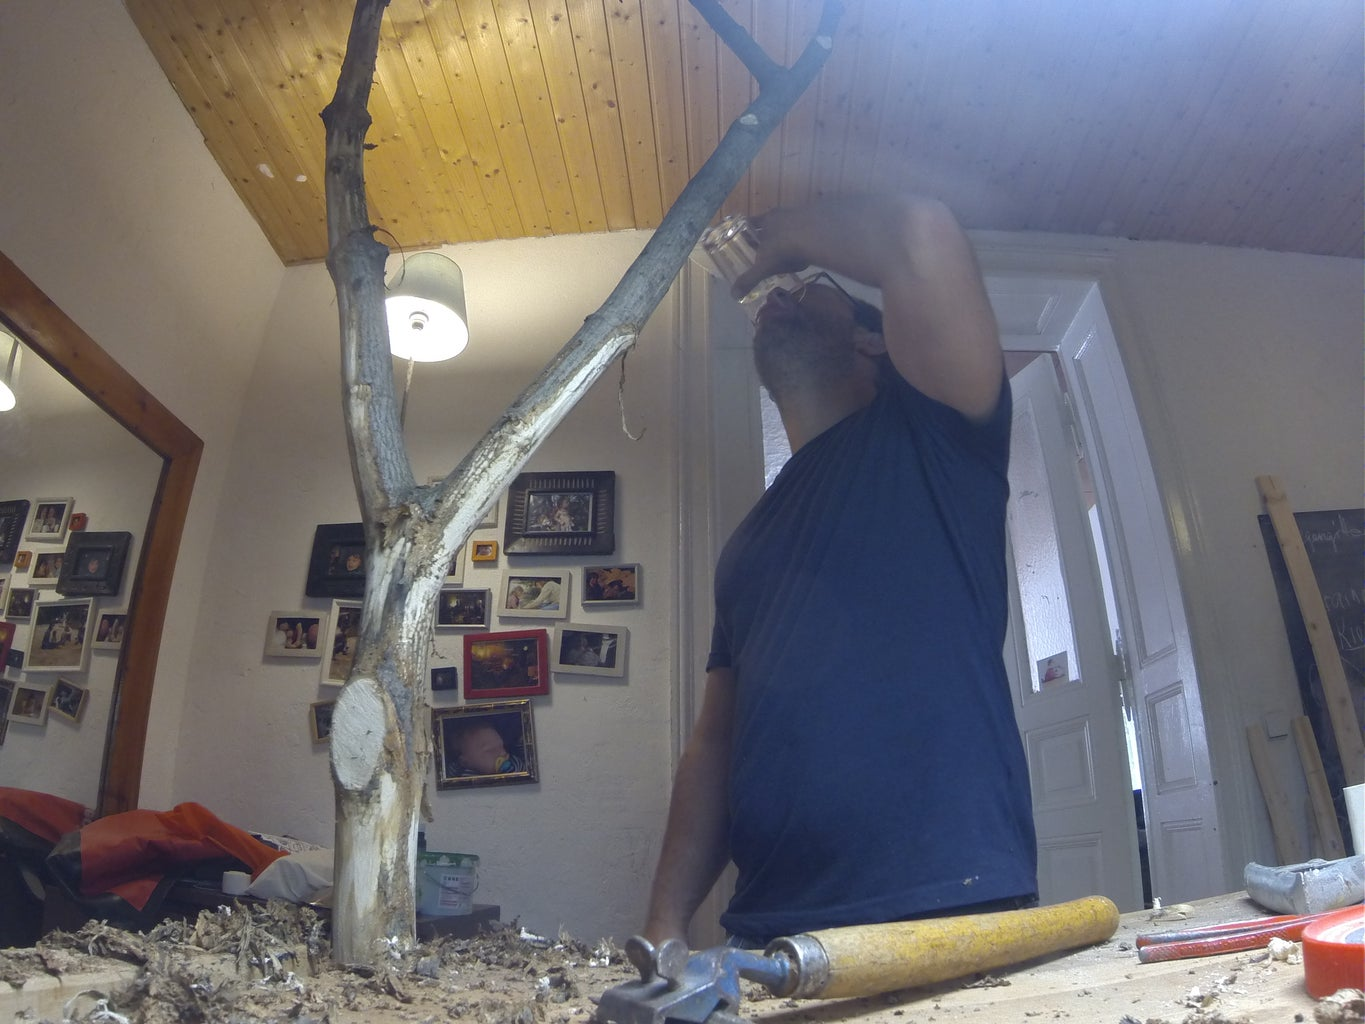 Removing the Bark From the Wood